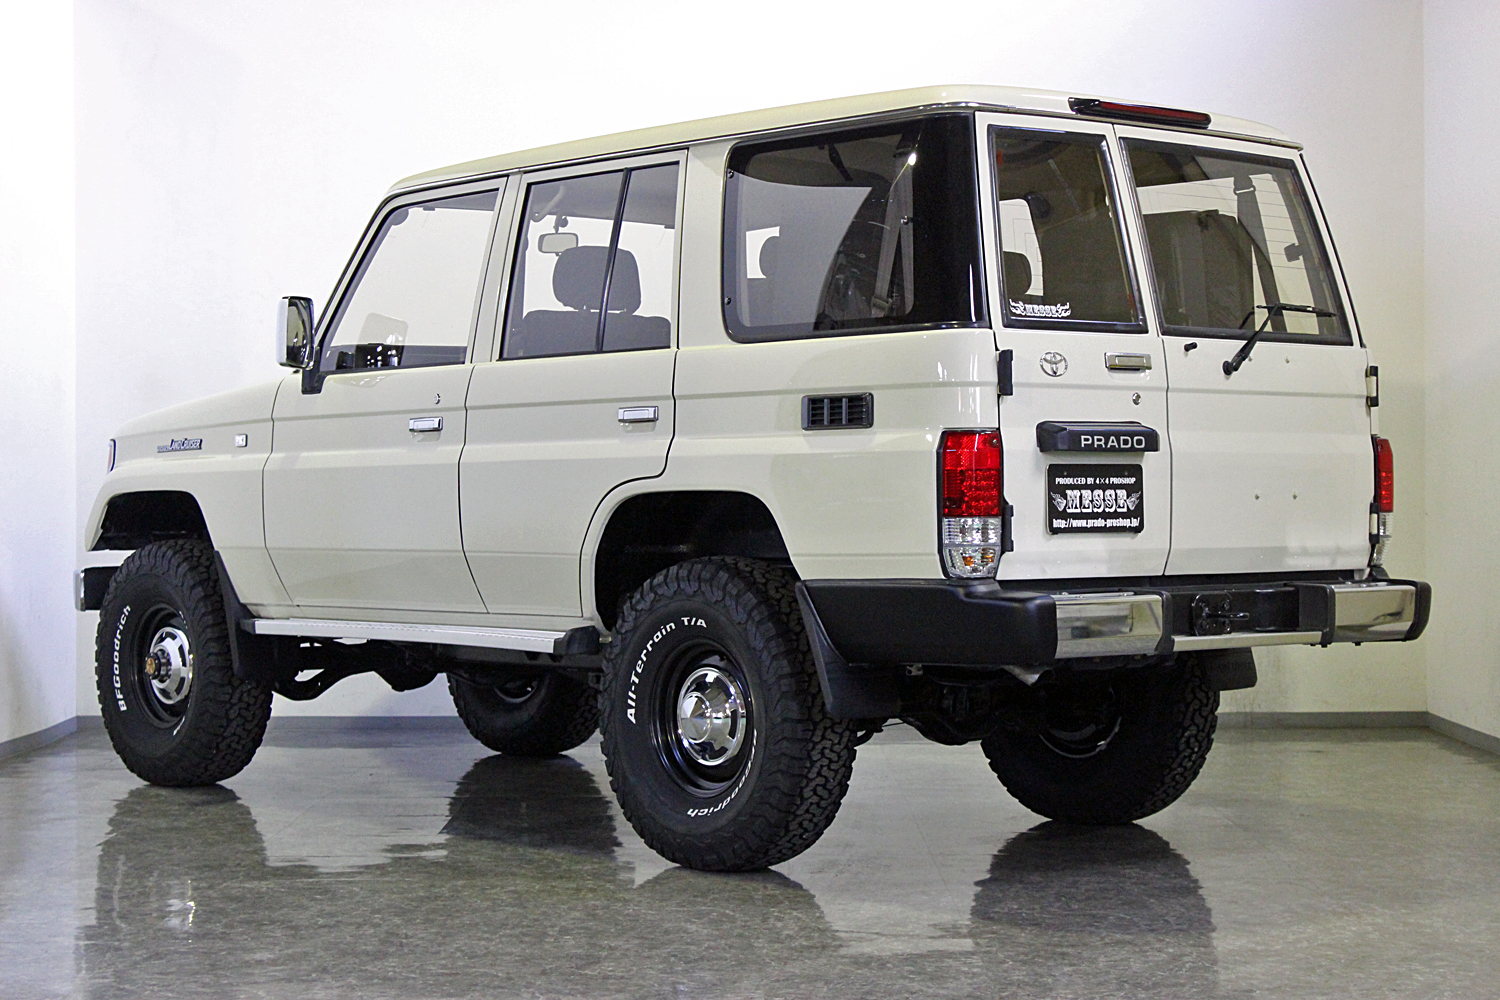 78prado-custom-old-english-white09